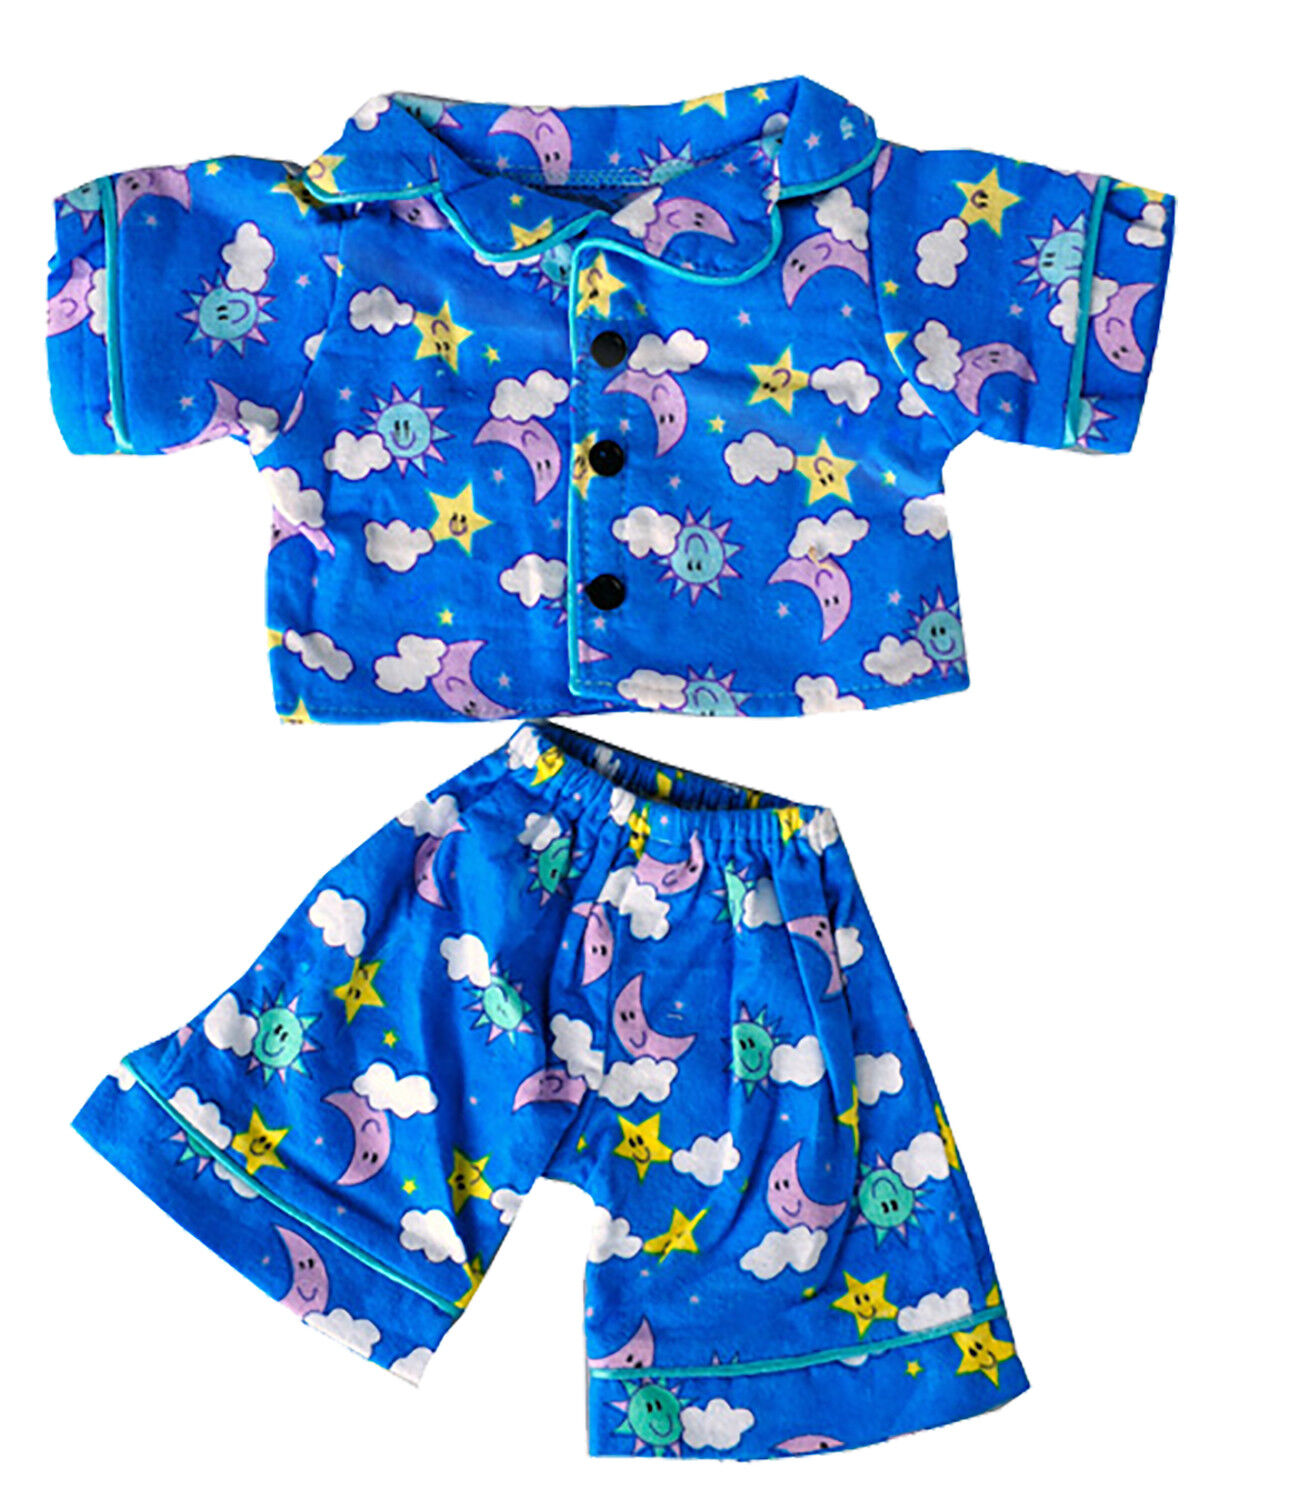 "Sunny Days Blue Pj's Teddy Bear Clothes Fits Most 14"" - 18"" Build-A-Bear & More"